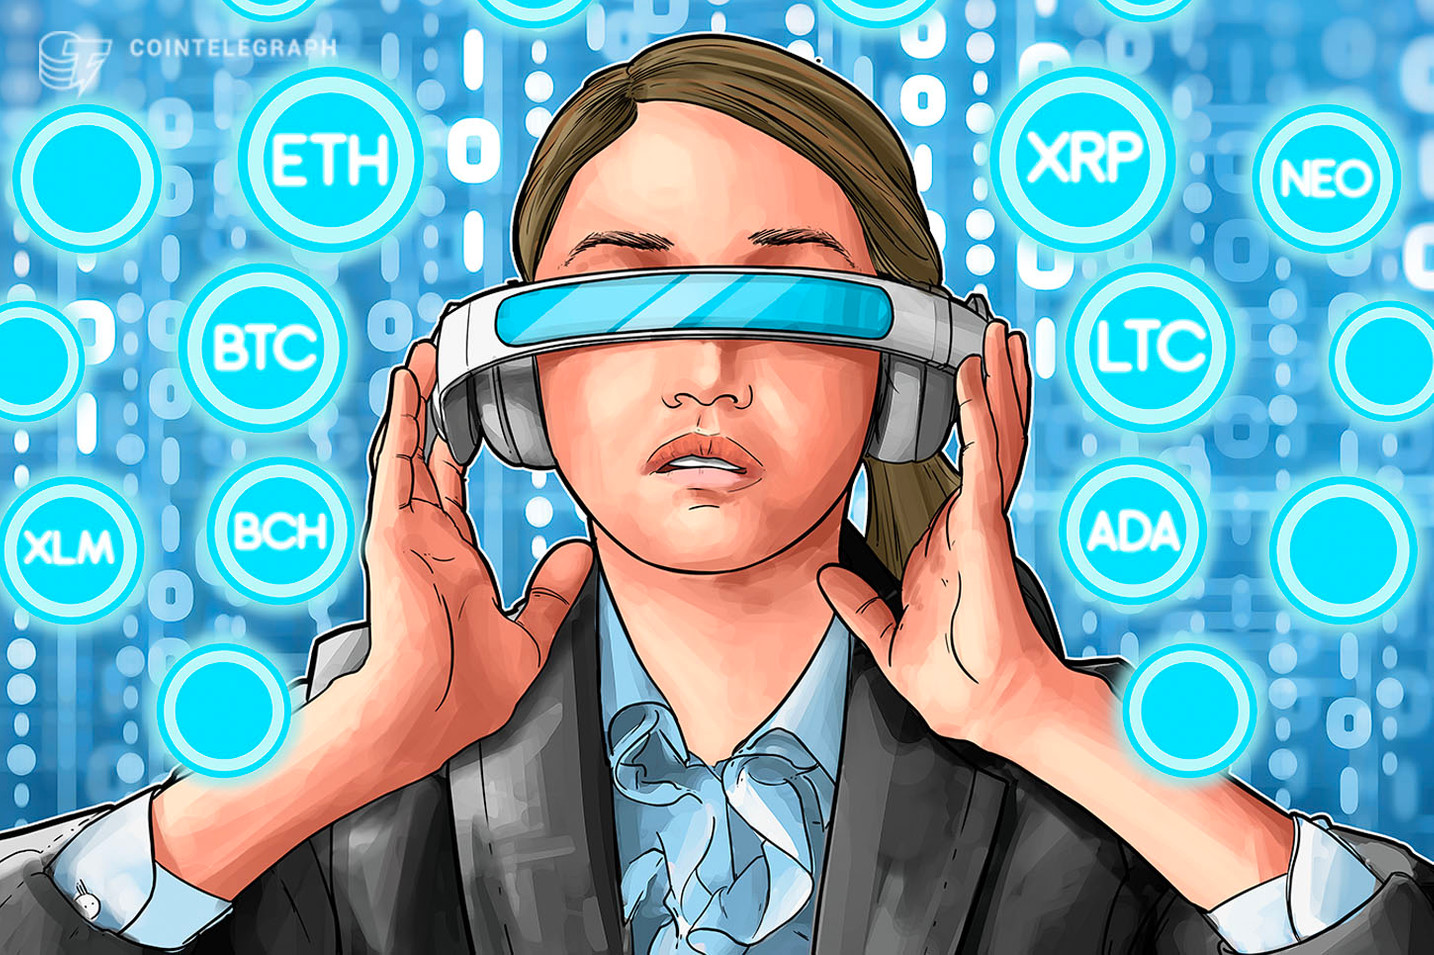 Bitcoin, Ethereum, Bitcoin Cash, Ripple, Stellar, Litecoin, Cardano, NEO, EOS: Price Analysis, March 23